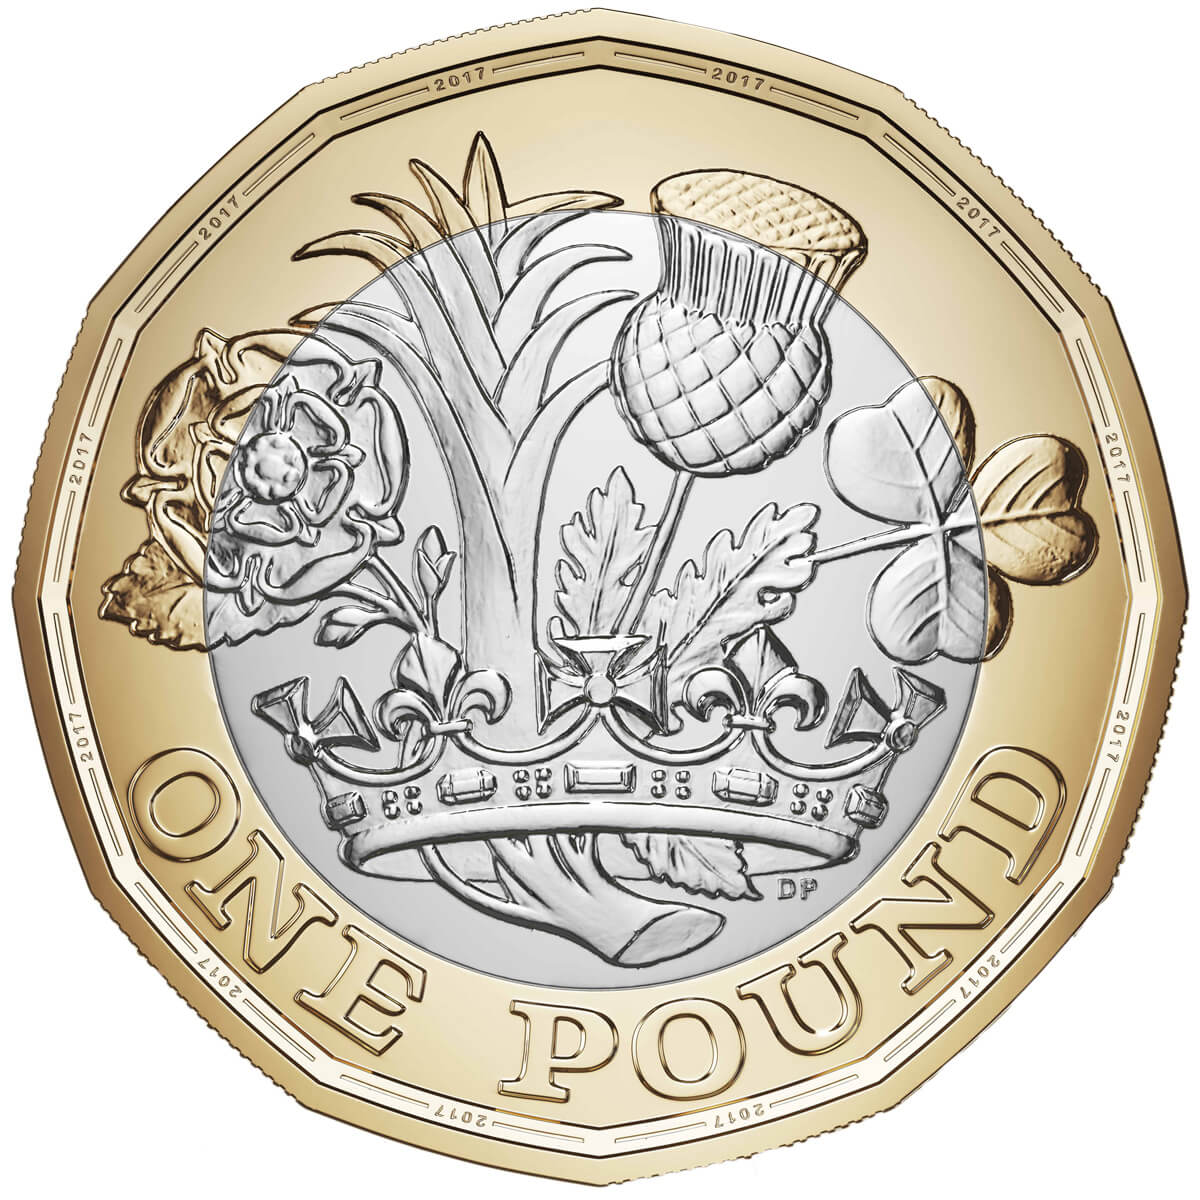 Conversion Euros A Libras Is Your Coin Mech Ready For The New Pound Coin Liberty